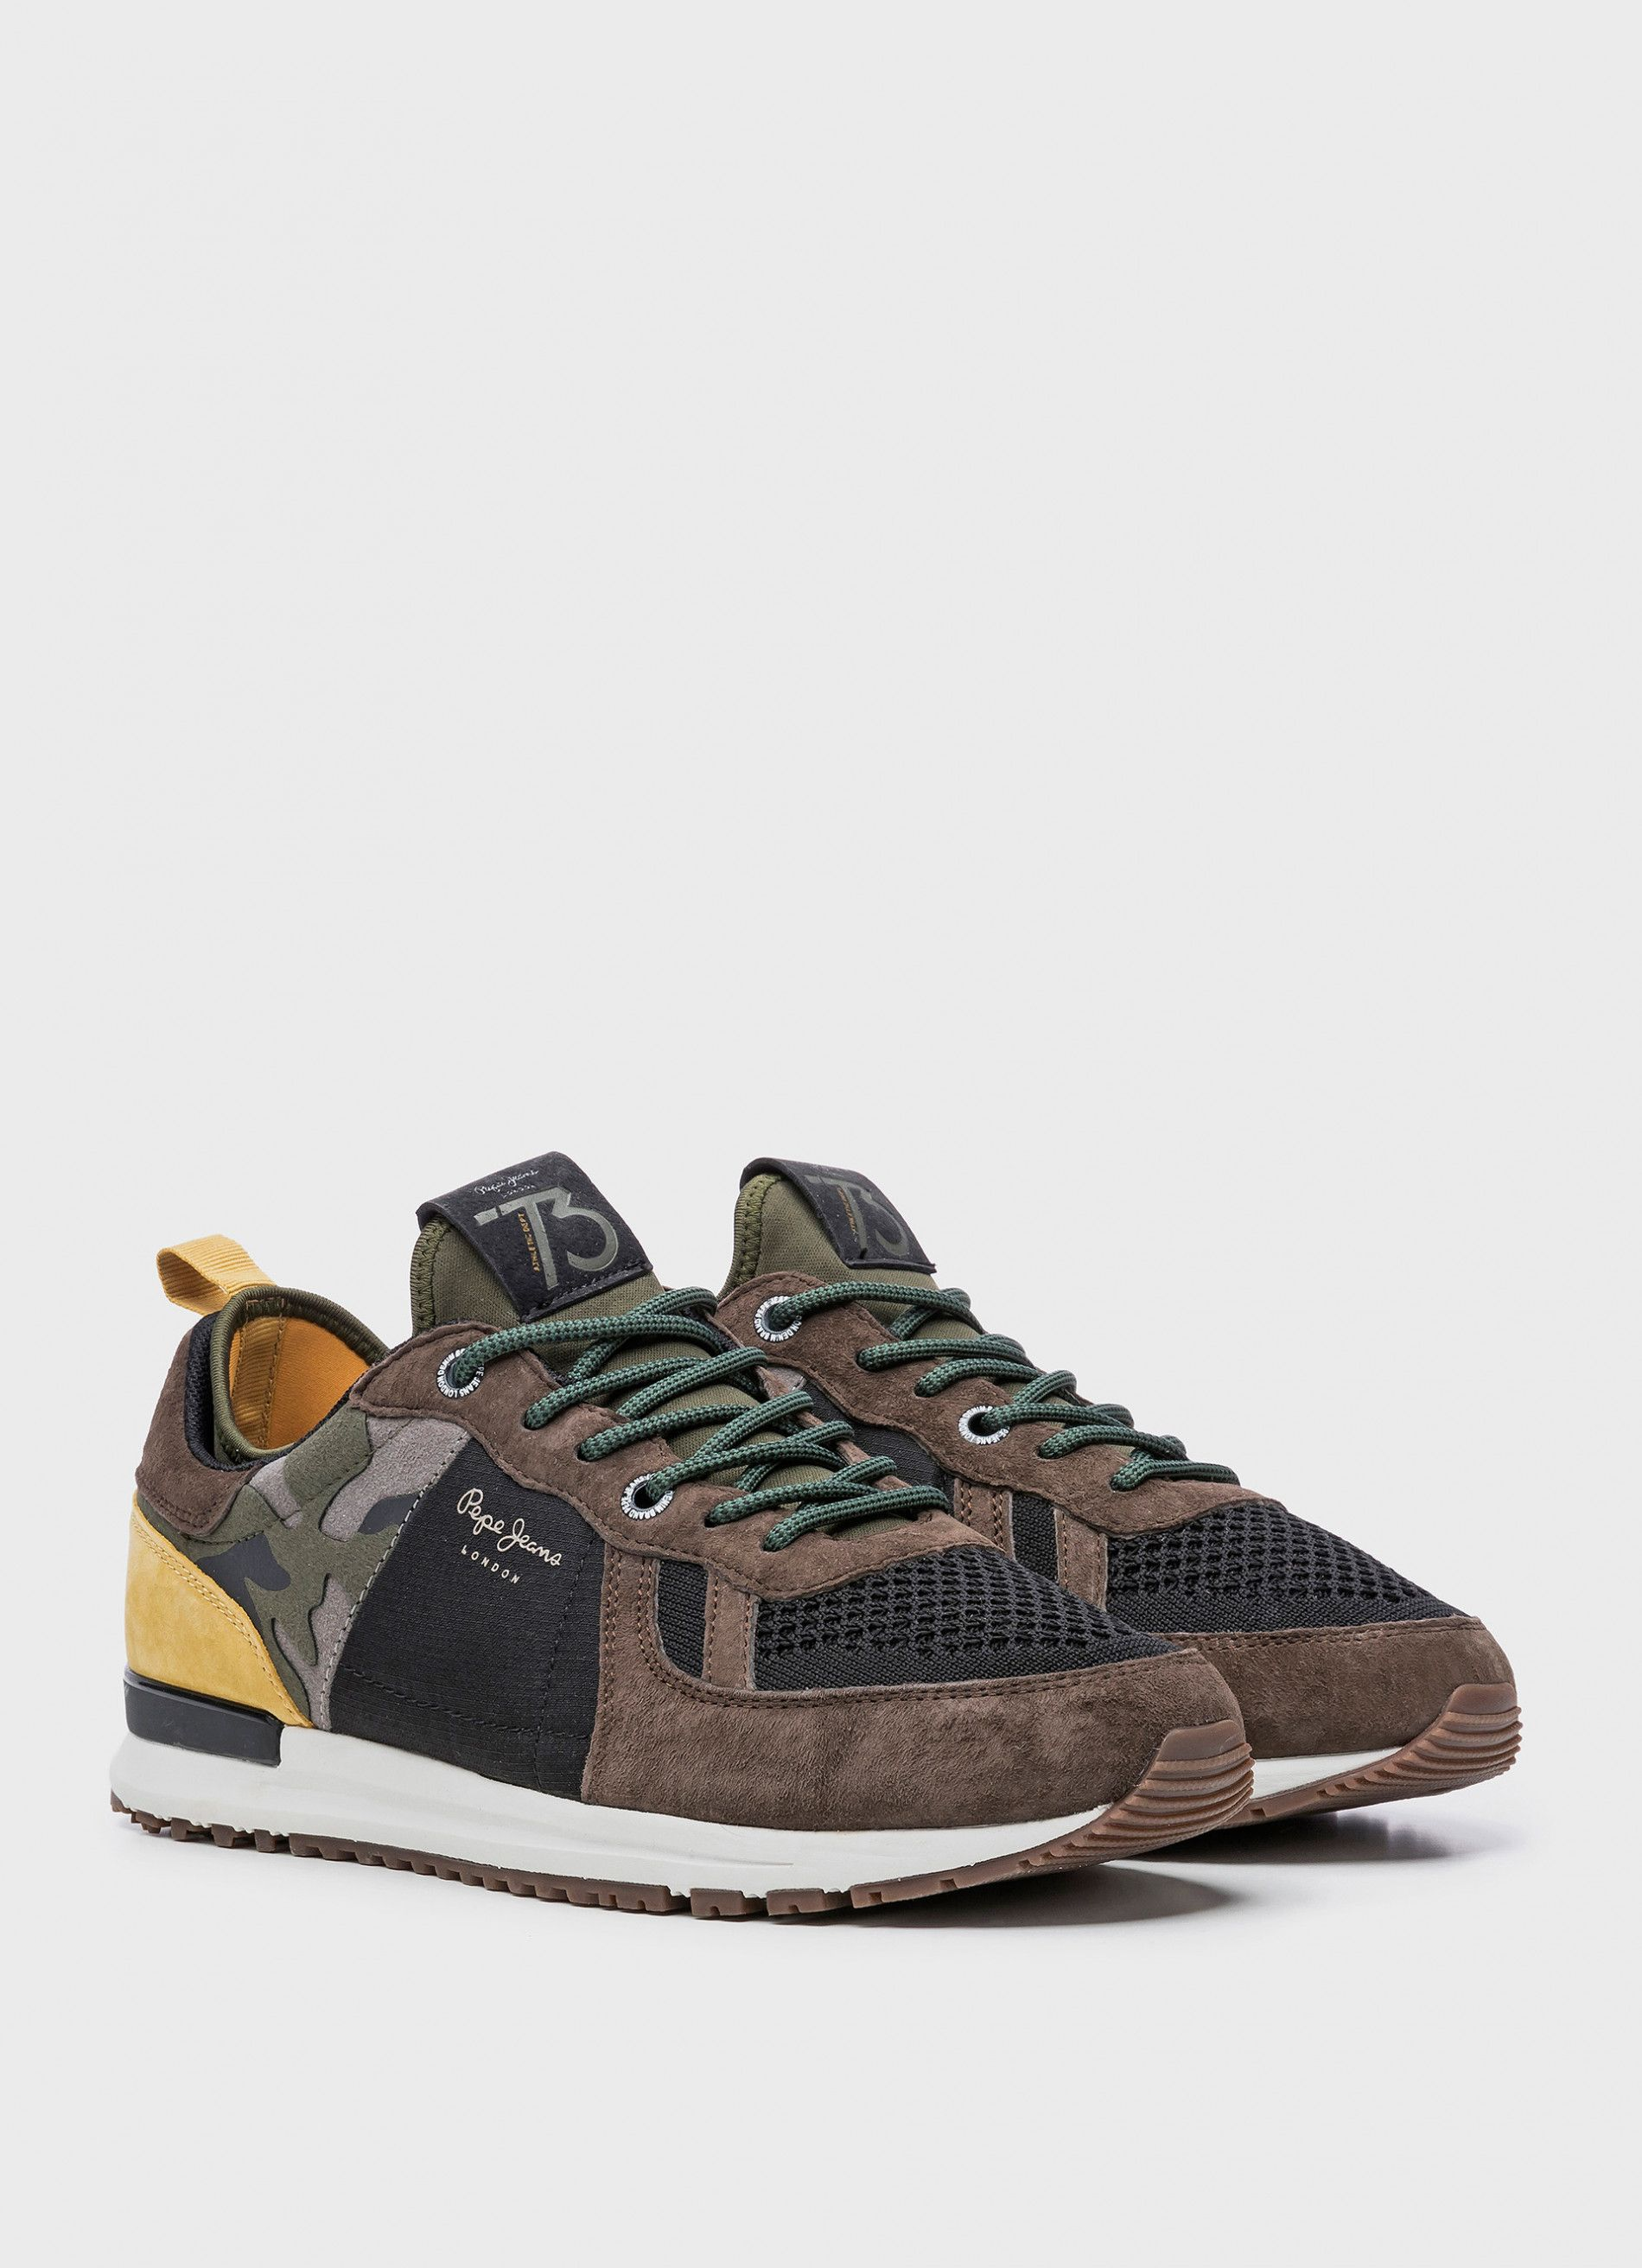 Sneakers 'tinker pro ' | Zapatos hombre